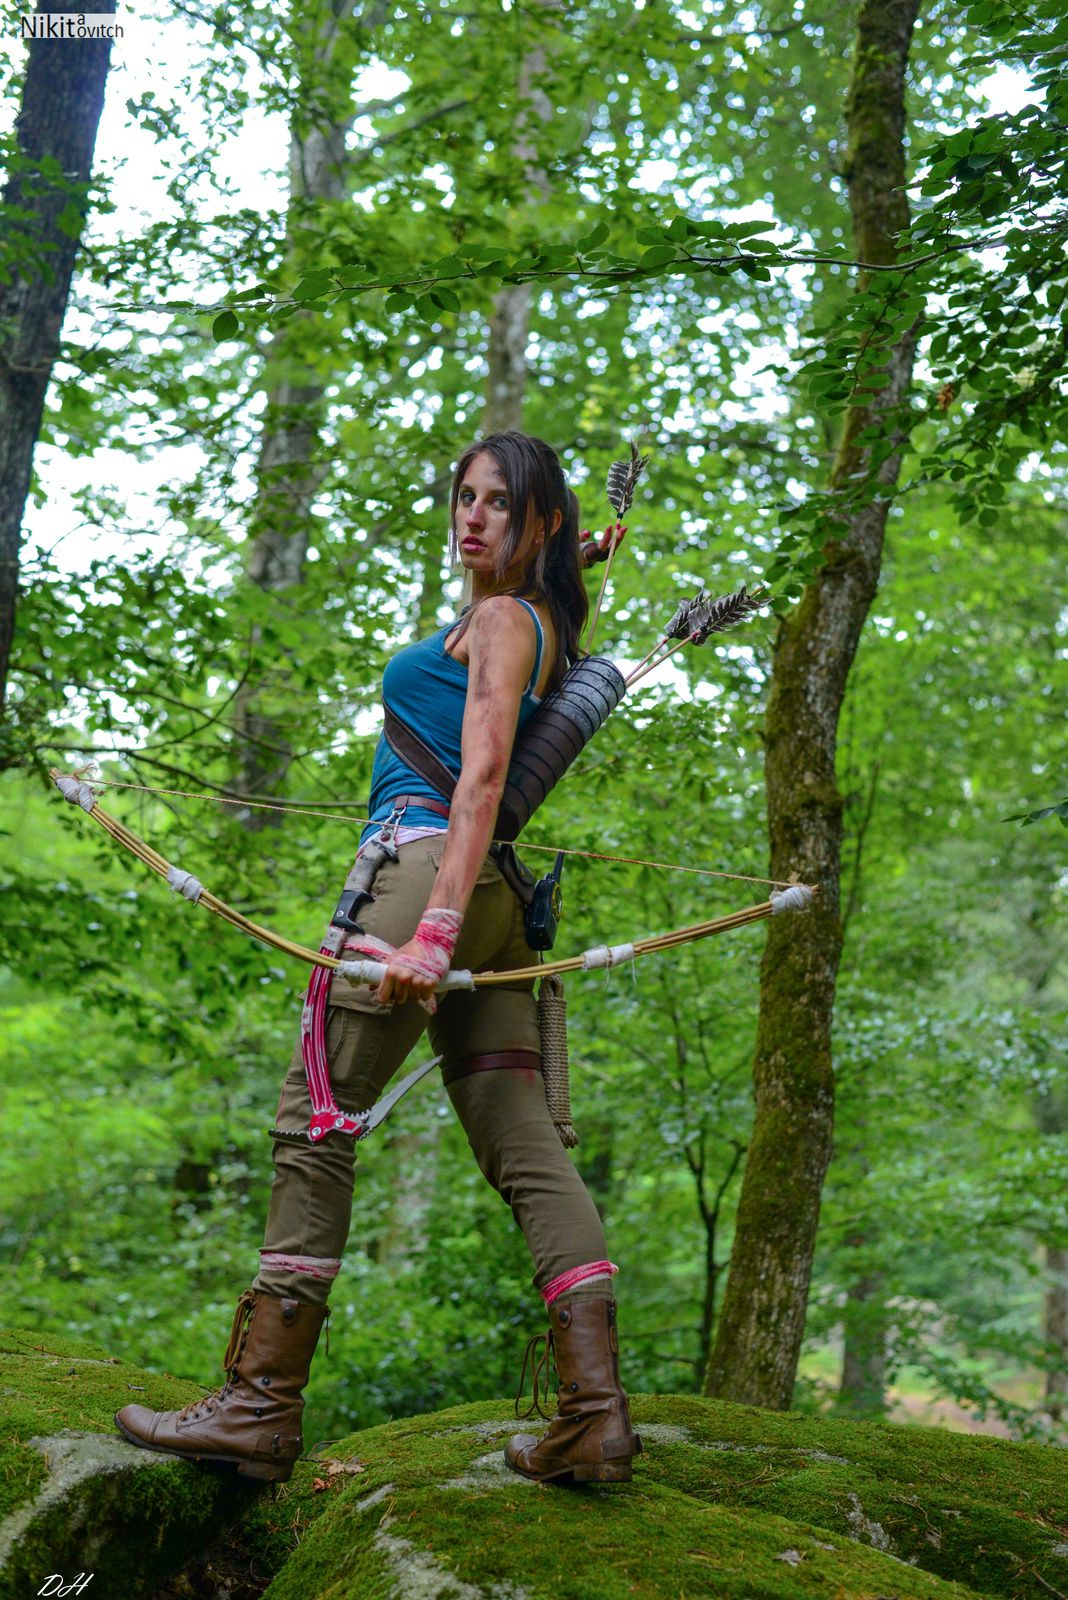 La Rubrique de LaraCosplay #1 &quot&#x3B;Lara Croft&quot&#x3B;